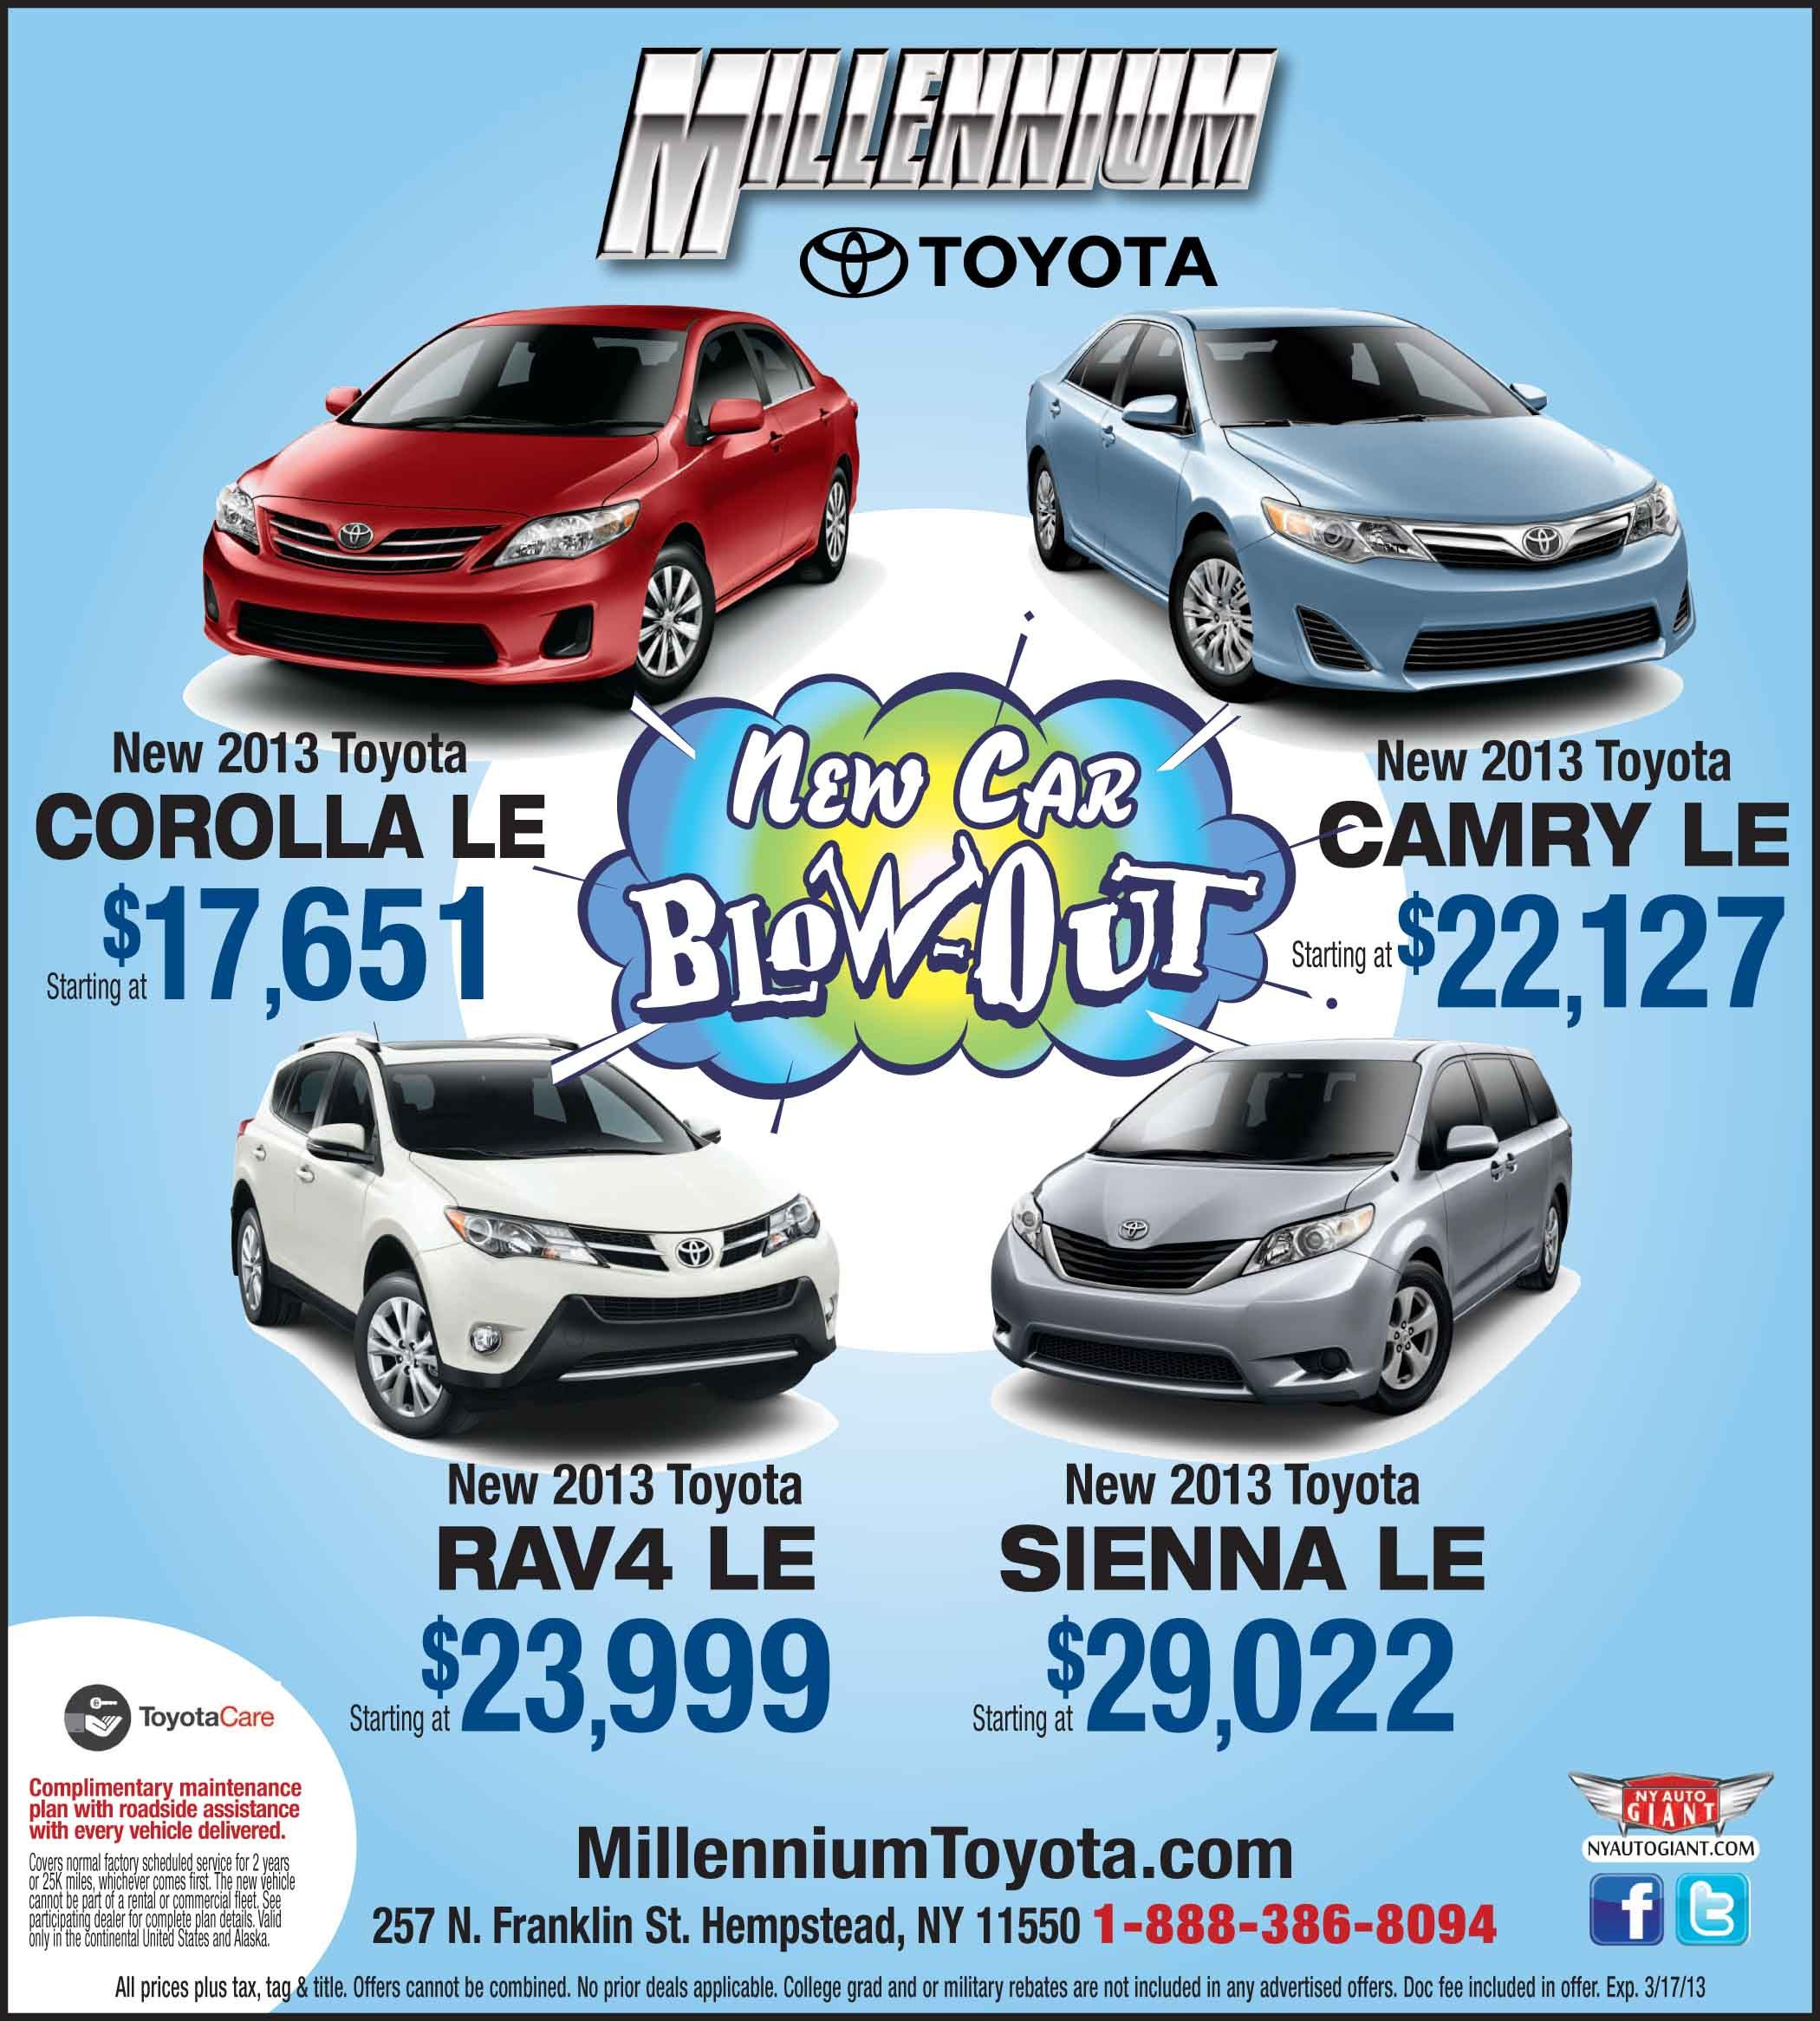 Find Over 700 New U0026 Used Toyota Models At Millennium Toyota, A Toyota  Dealership Serving Queens U0026 Garden City, NY. Visit Us Today To Get A  Fabulous 2017 ...